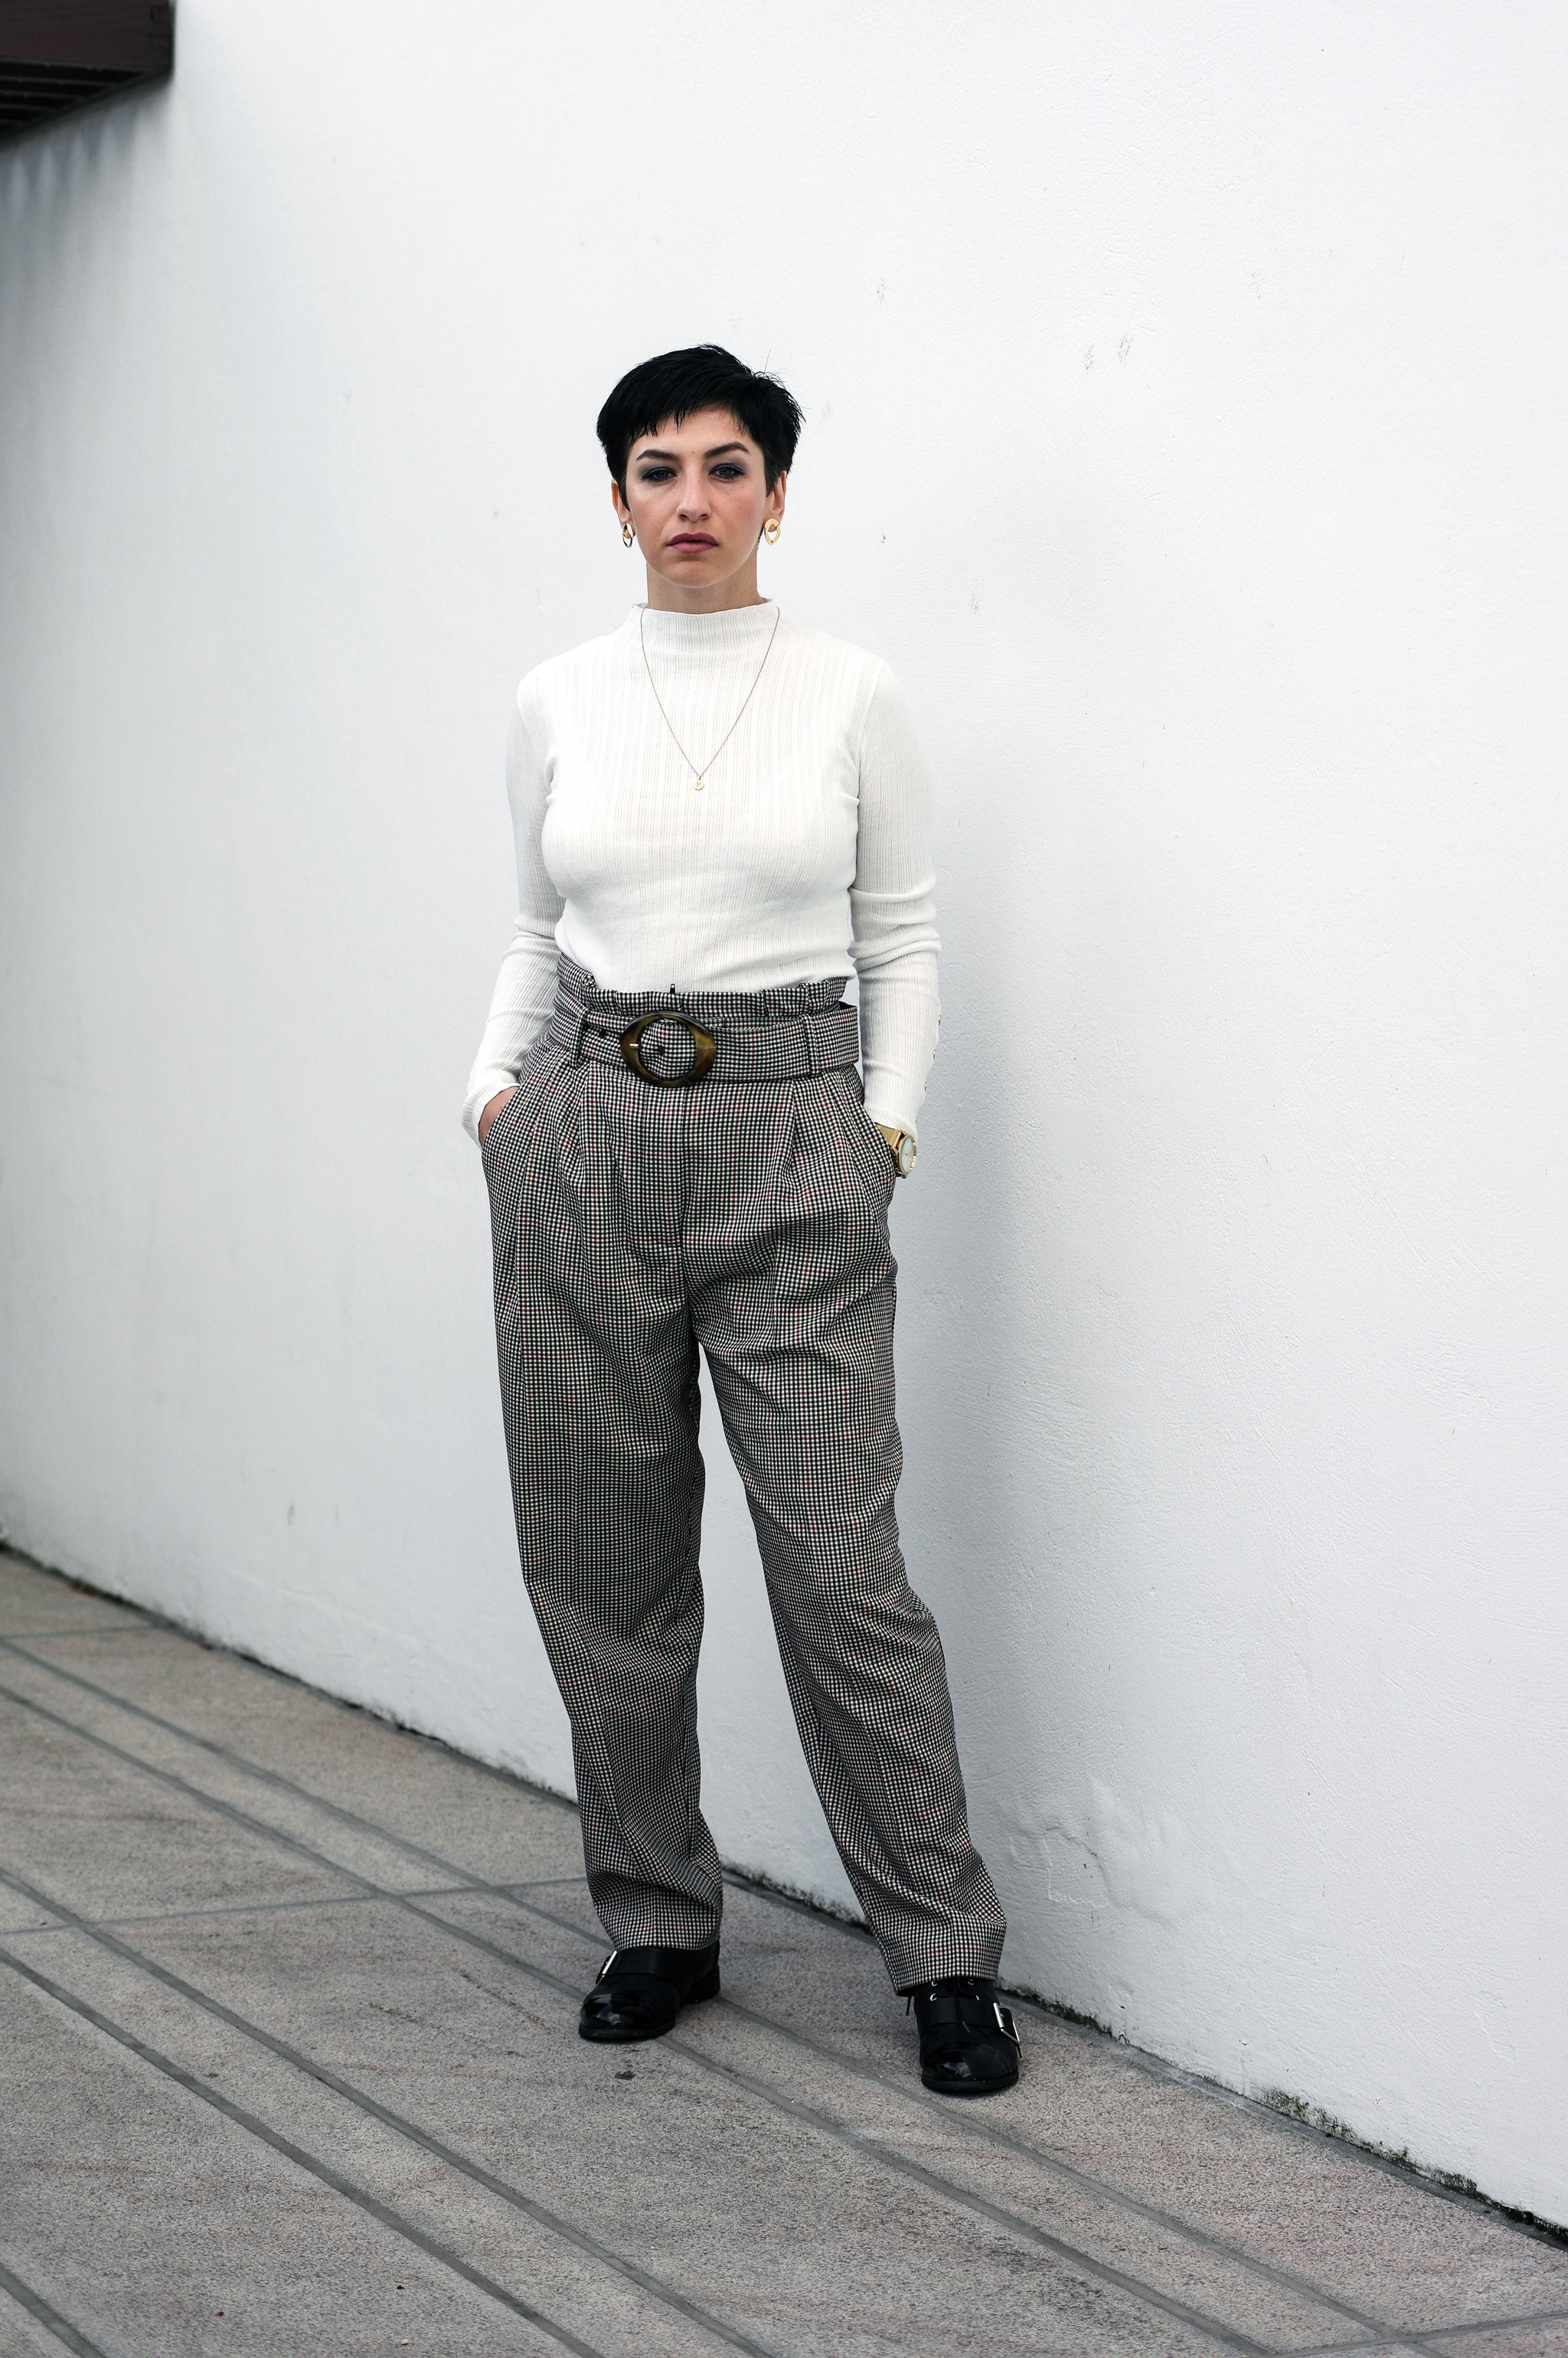 work wear outfit, women trousers, fall winter fashion outfits, look of the day, style blogger, mihabalan.com